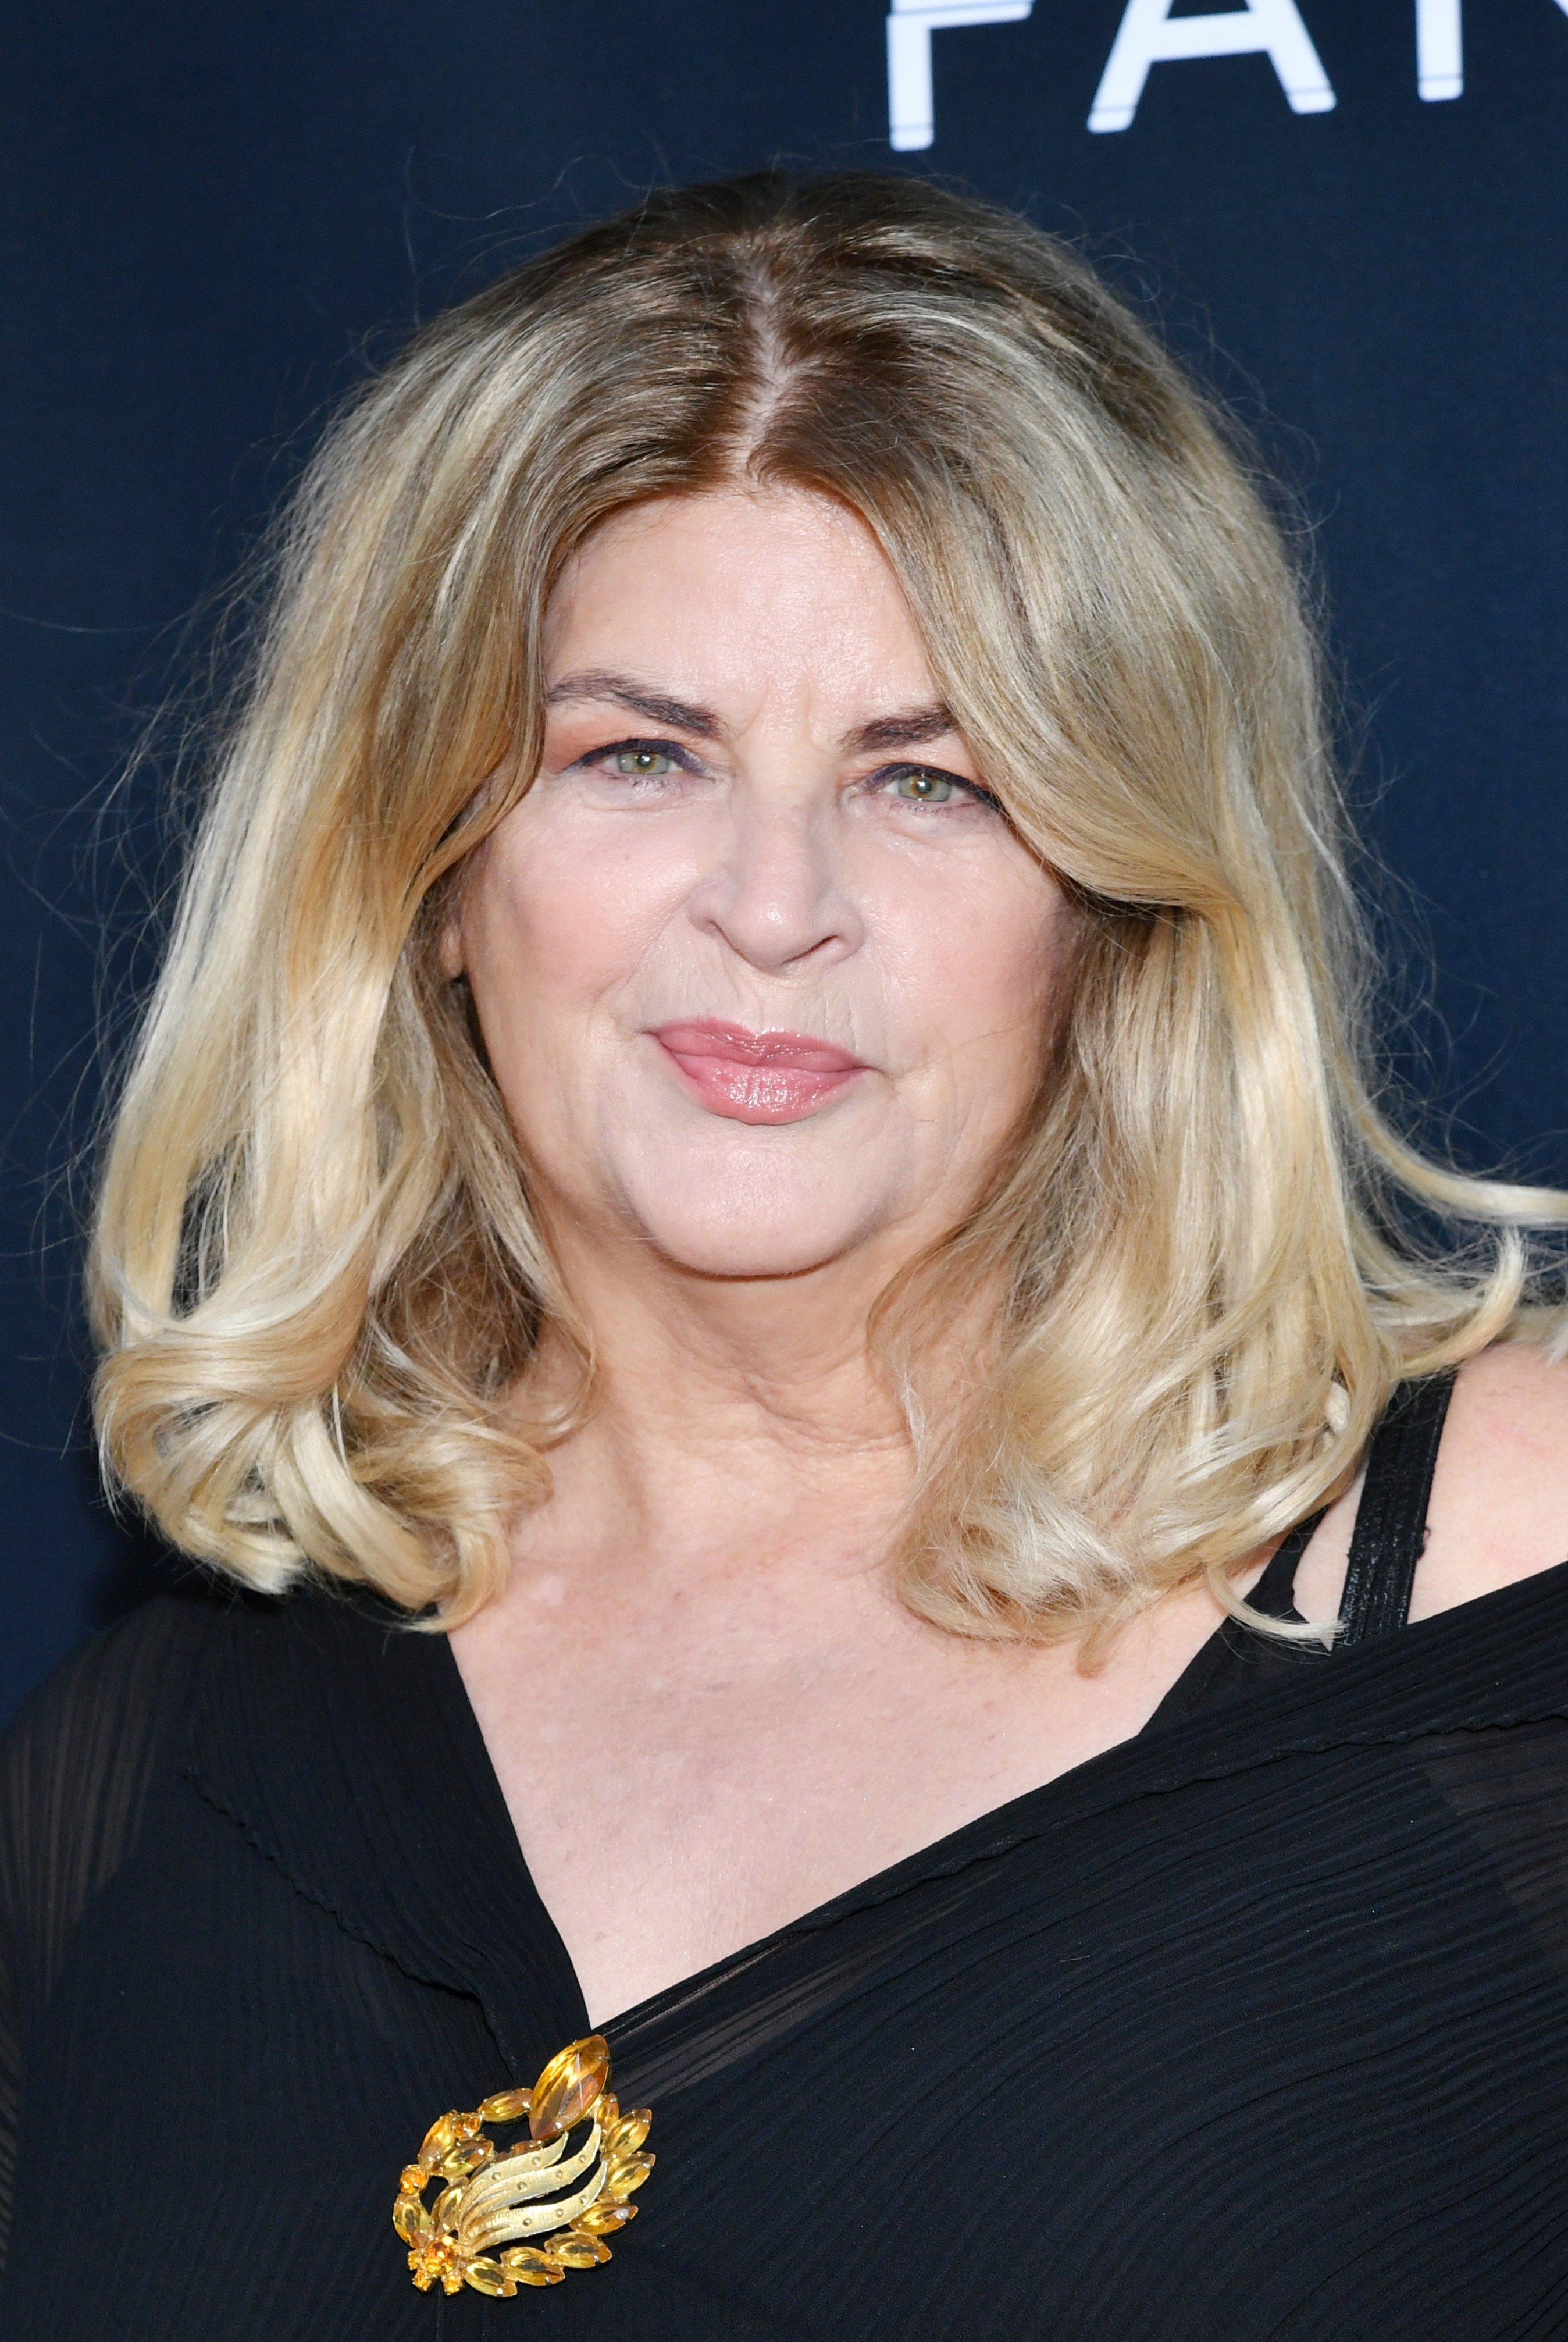 Kirstie Alley slammed by Patricia Arquette, Judd Apatow and other celebrities after publicly supporting Donald Trump